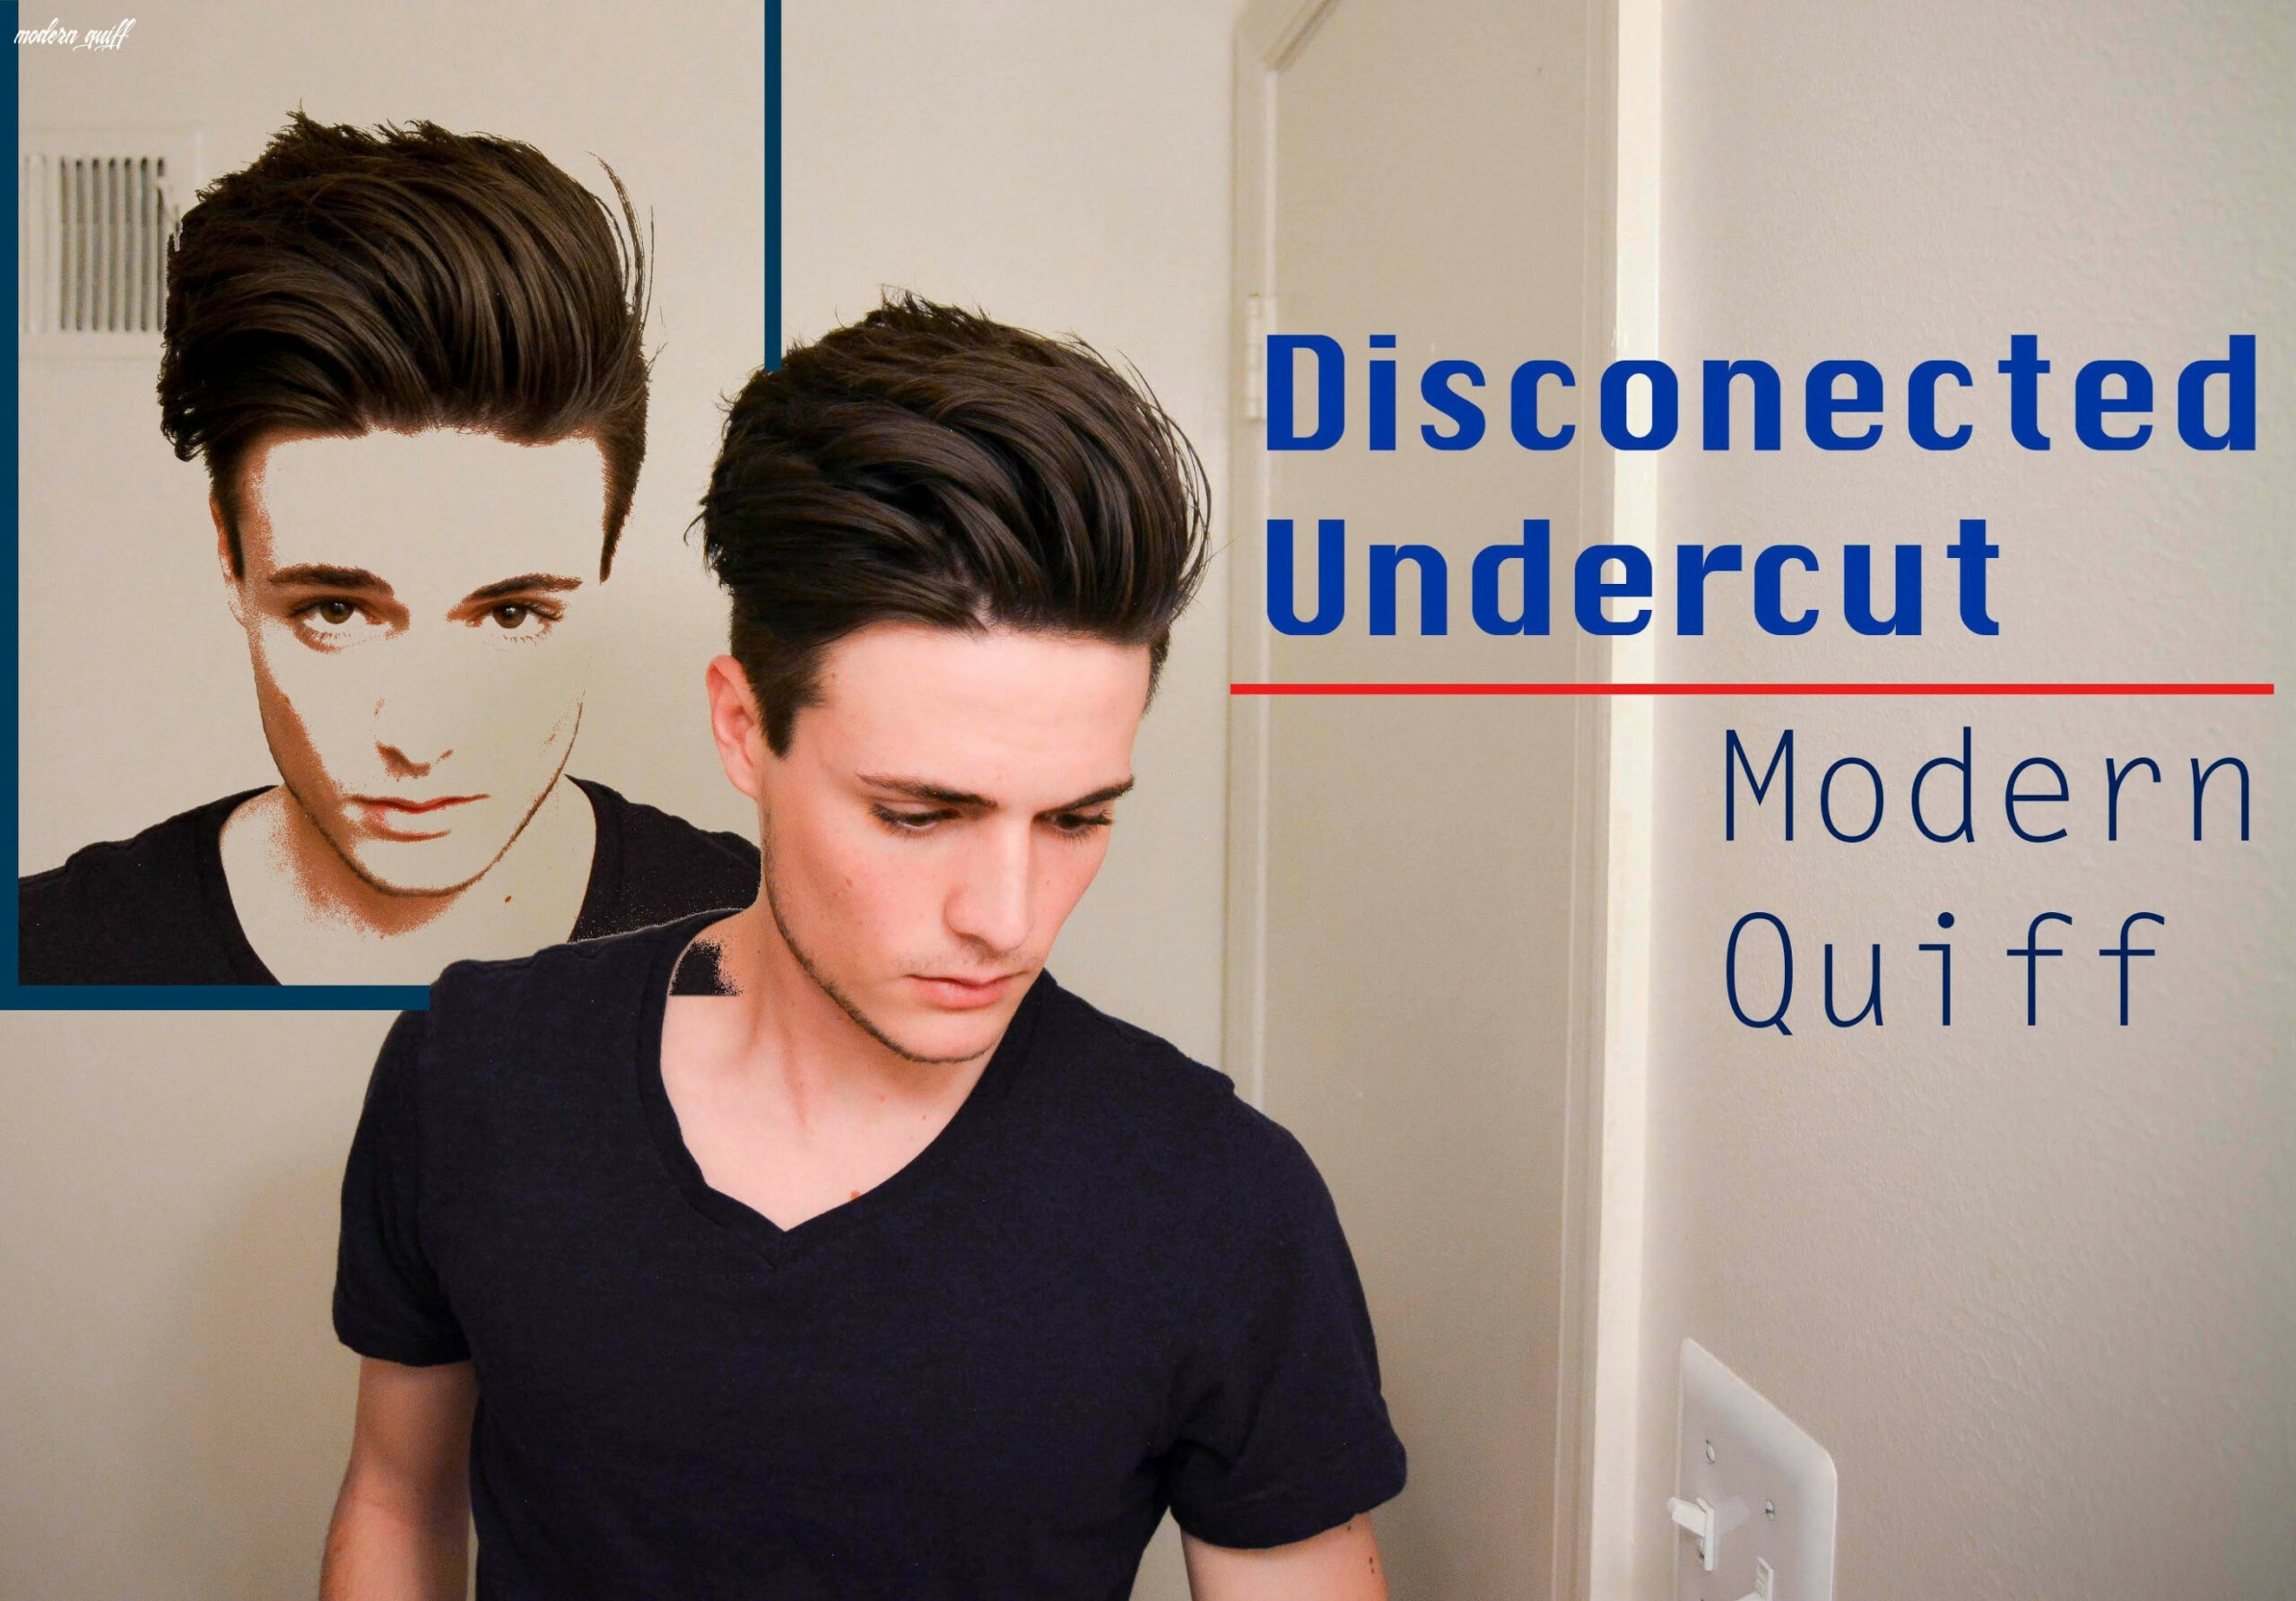 Disconnected undercut/modern quiff how i style it (with images